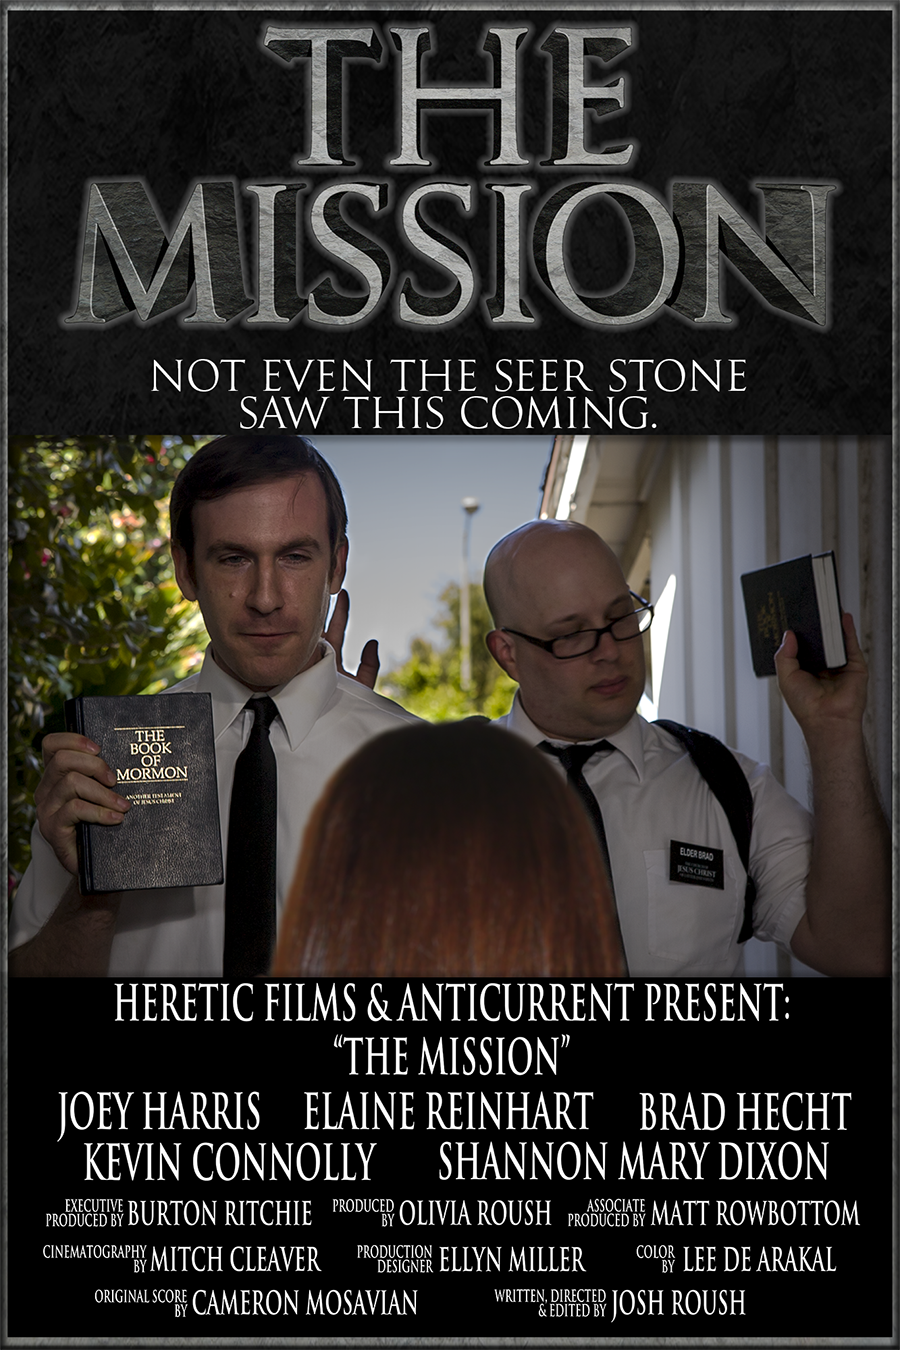 The Mission Poster by Josh Roush